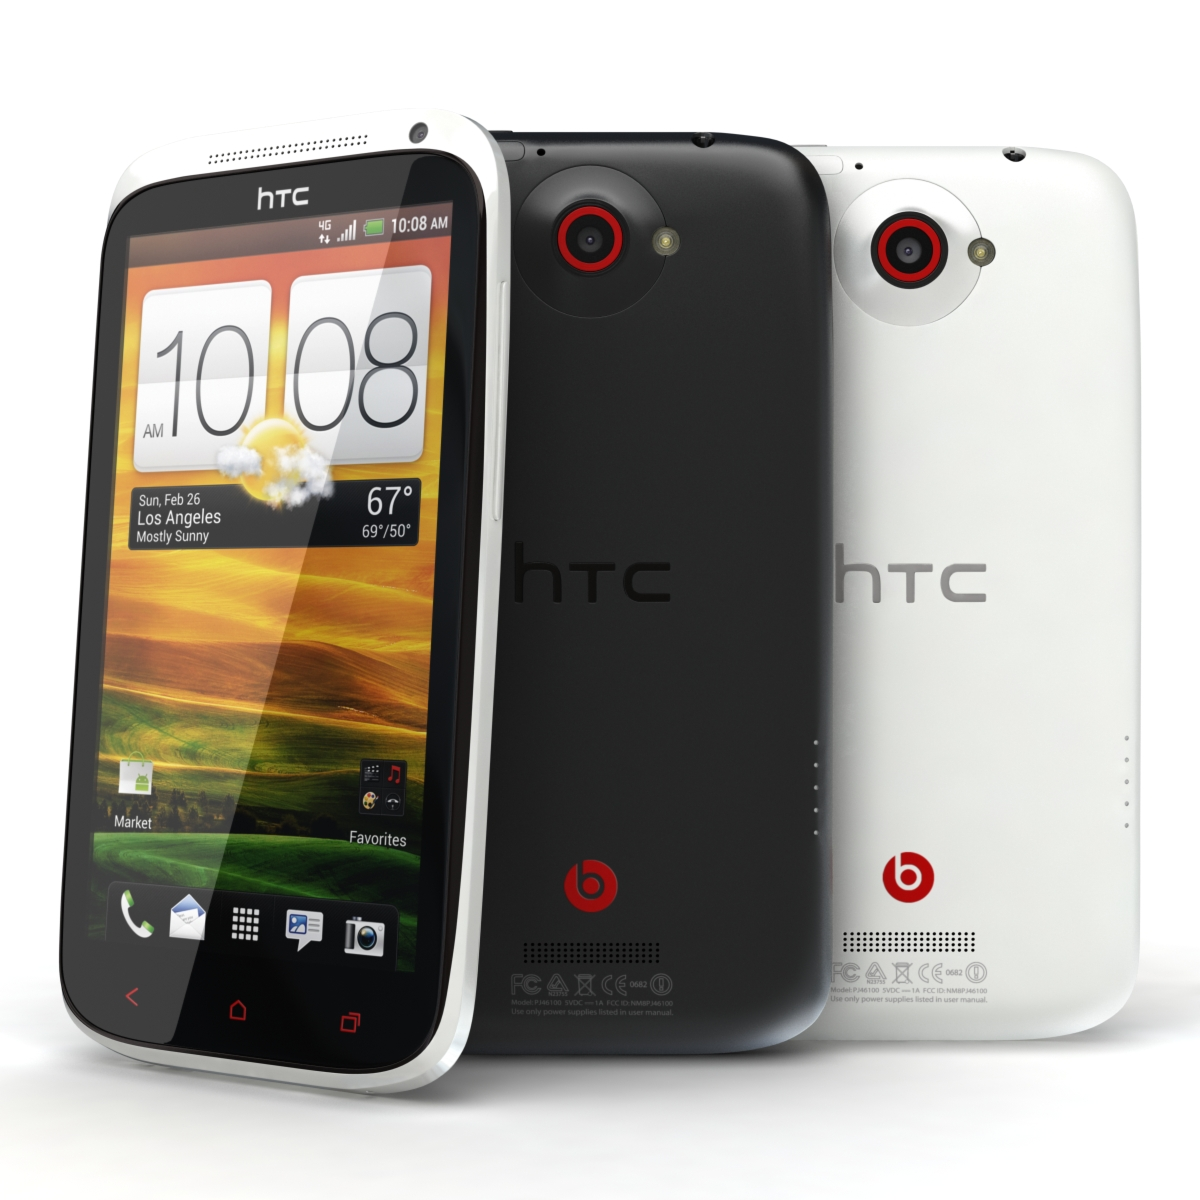 htc one x+ black and white 3d model 3ds max fbx c4d lwo obj 151431